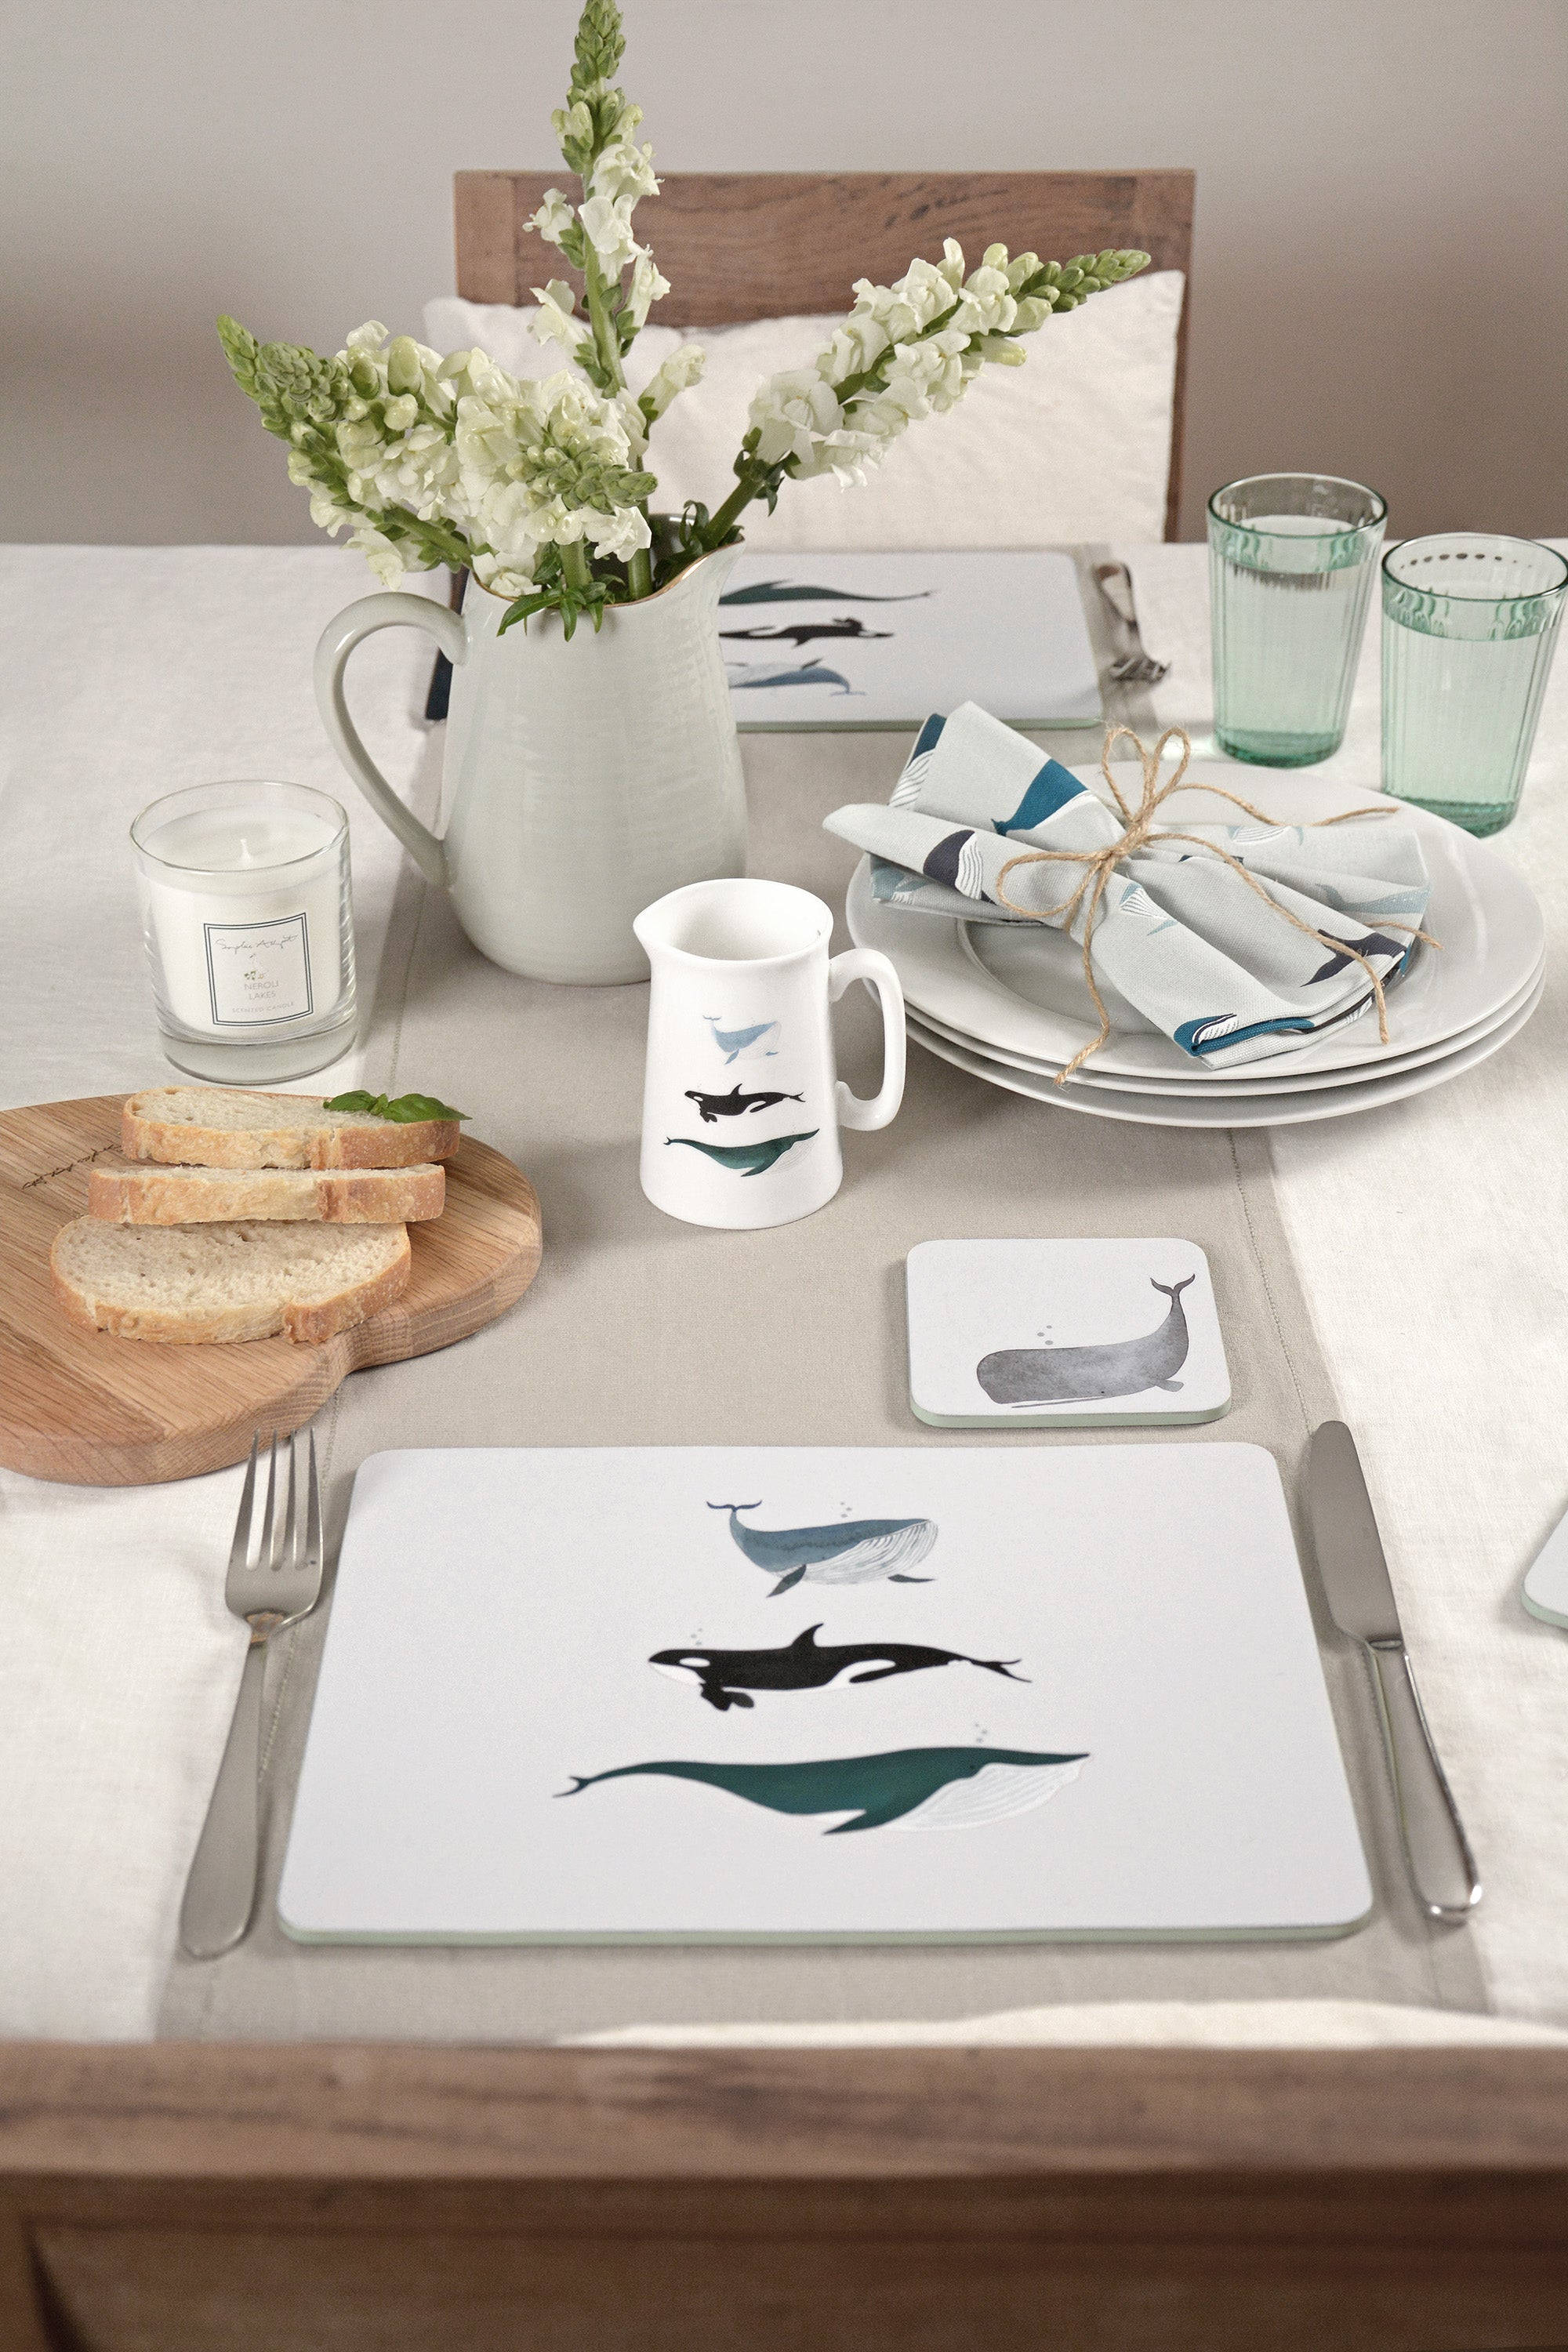 Whales coastal table setting by Sophie Allport